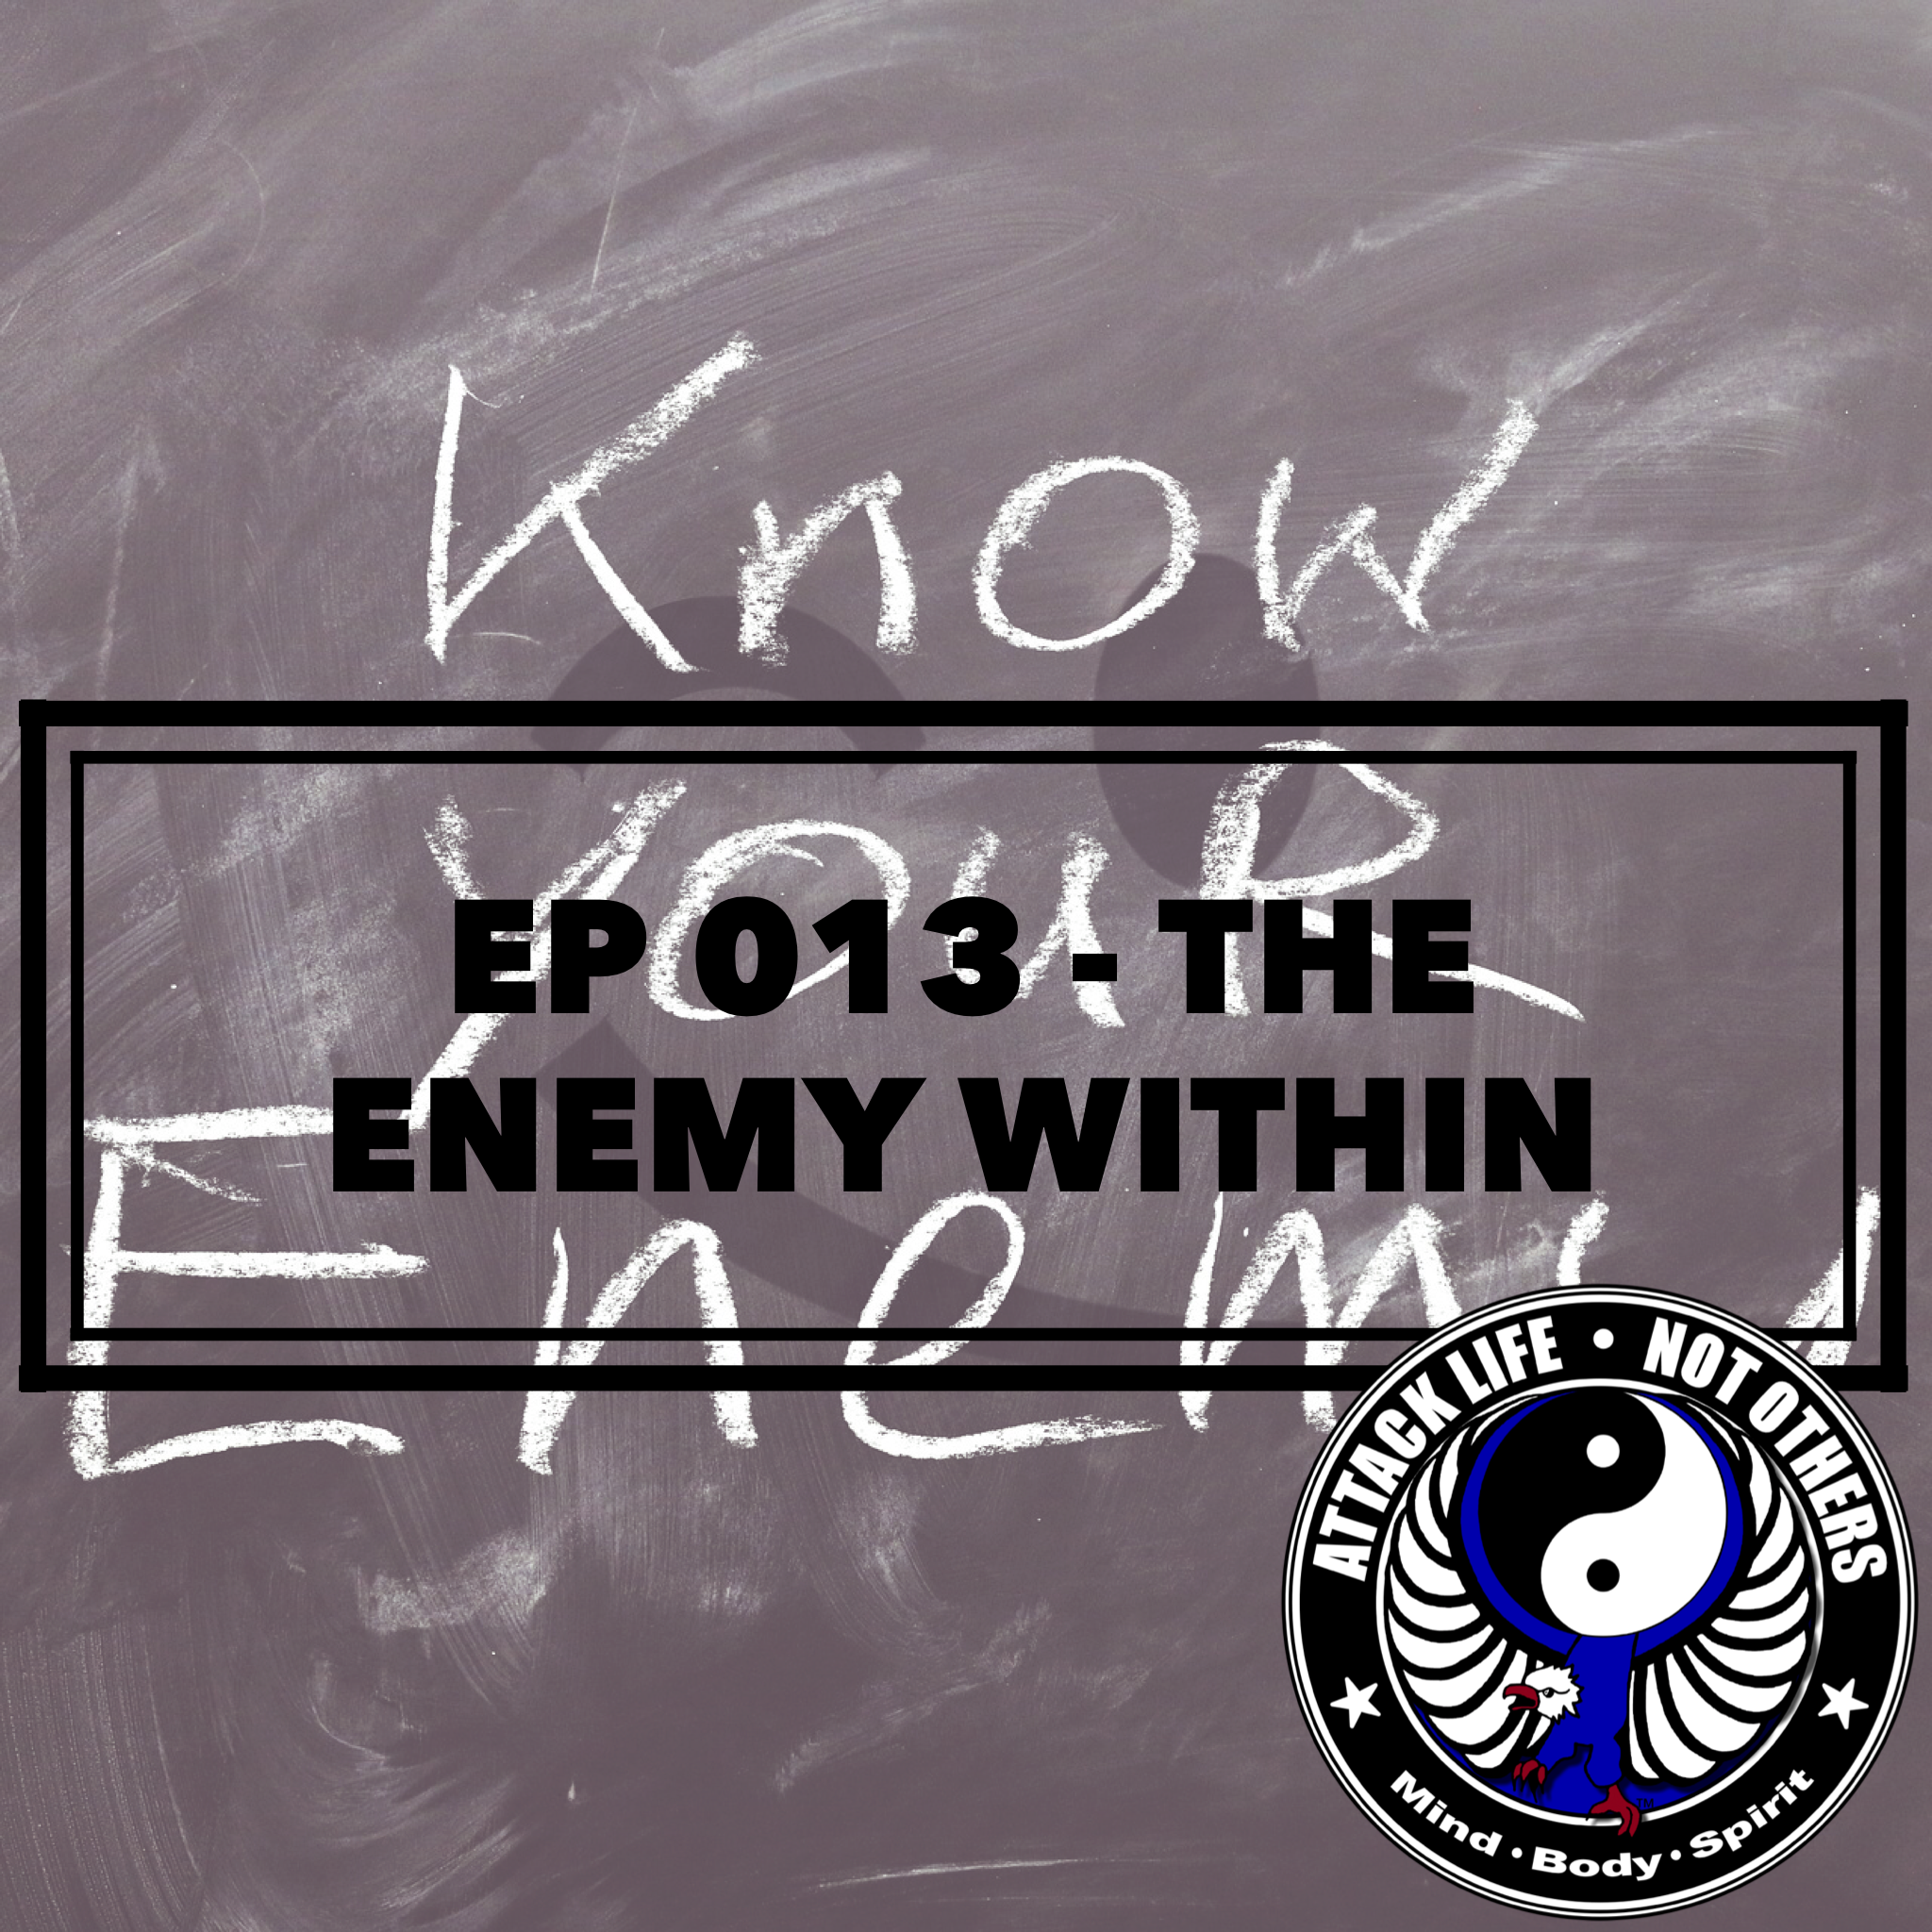 Ep 013 - The Enemy Within